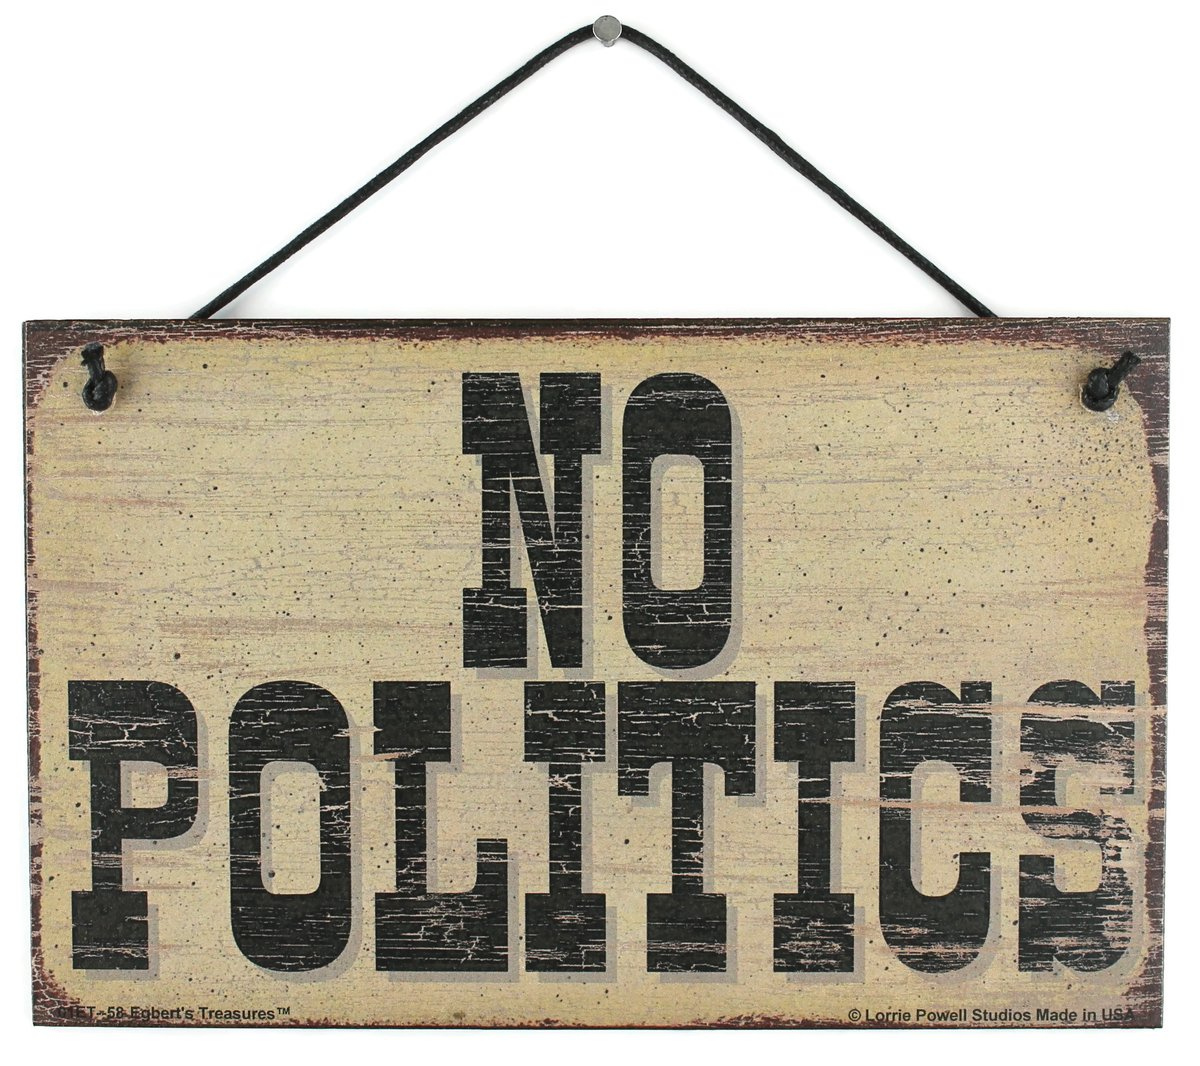 NO POLITICS (at Christmas Time) - Get this sign here:  https://www.amazon.com/gp/product/B07XGDK4B6 …  #NoPolitics #Politics #VOTE  #Signs #Gifts #Republicans #Democrats #Political #MerryChristmas #Christmas #Xmas #FunSigns #EgbertsTreasures #GiftIdeas pic.twitter.com/pAOkvLGoWV